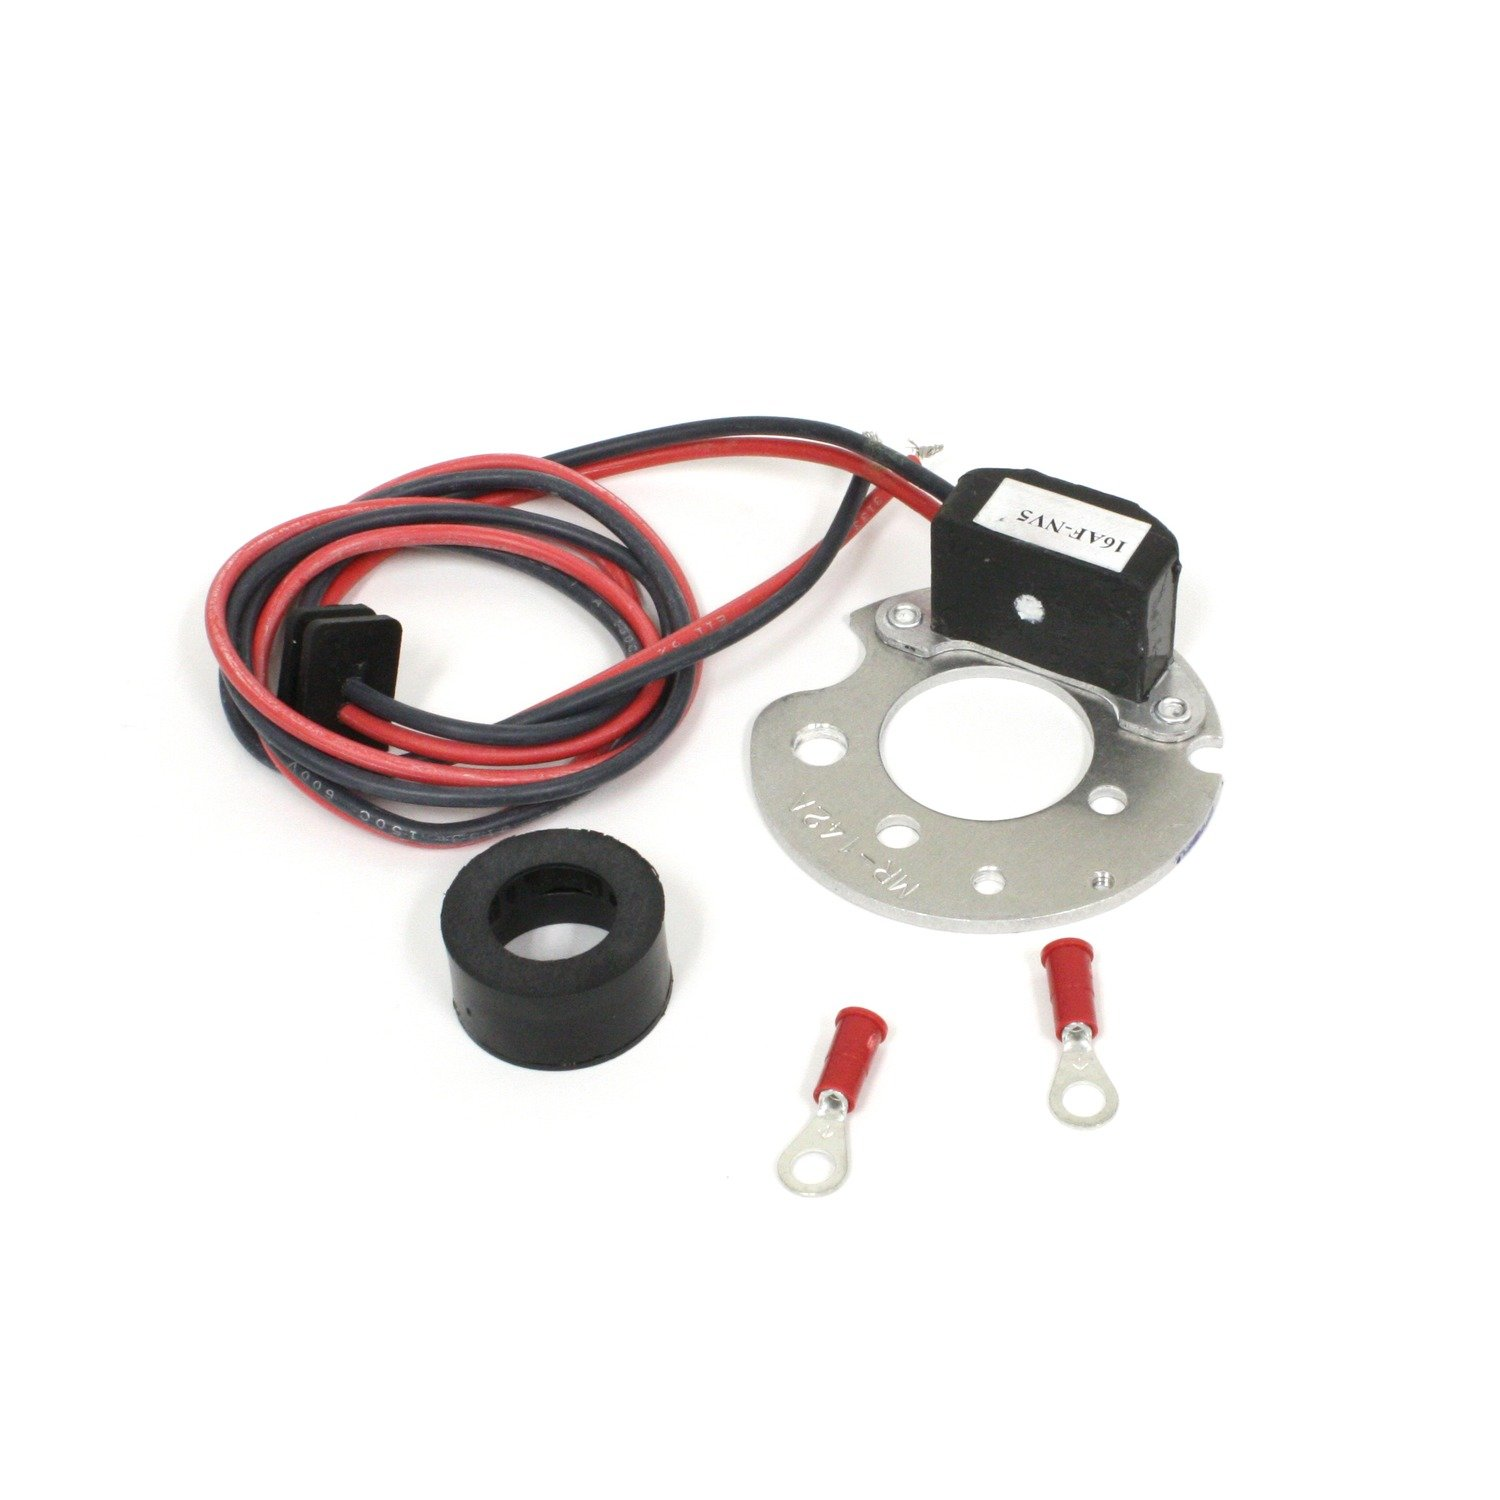 Pertronix MR-142A Ignitor for Marelli 4 Cylinder Engine by Pertronix